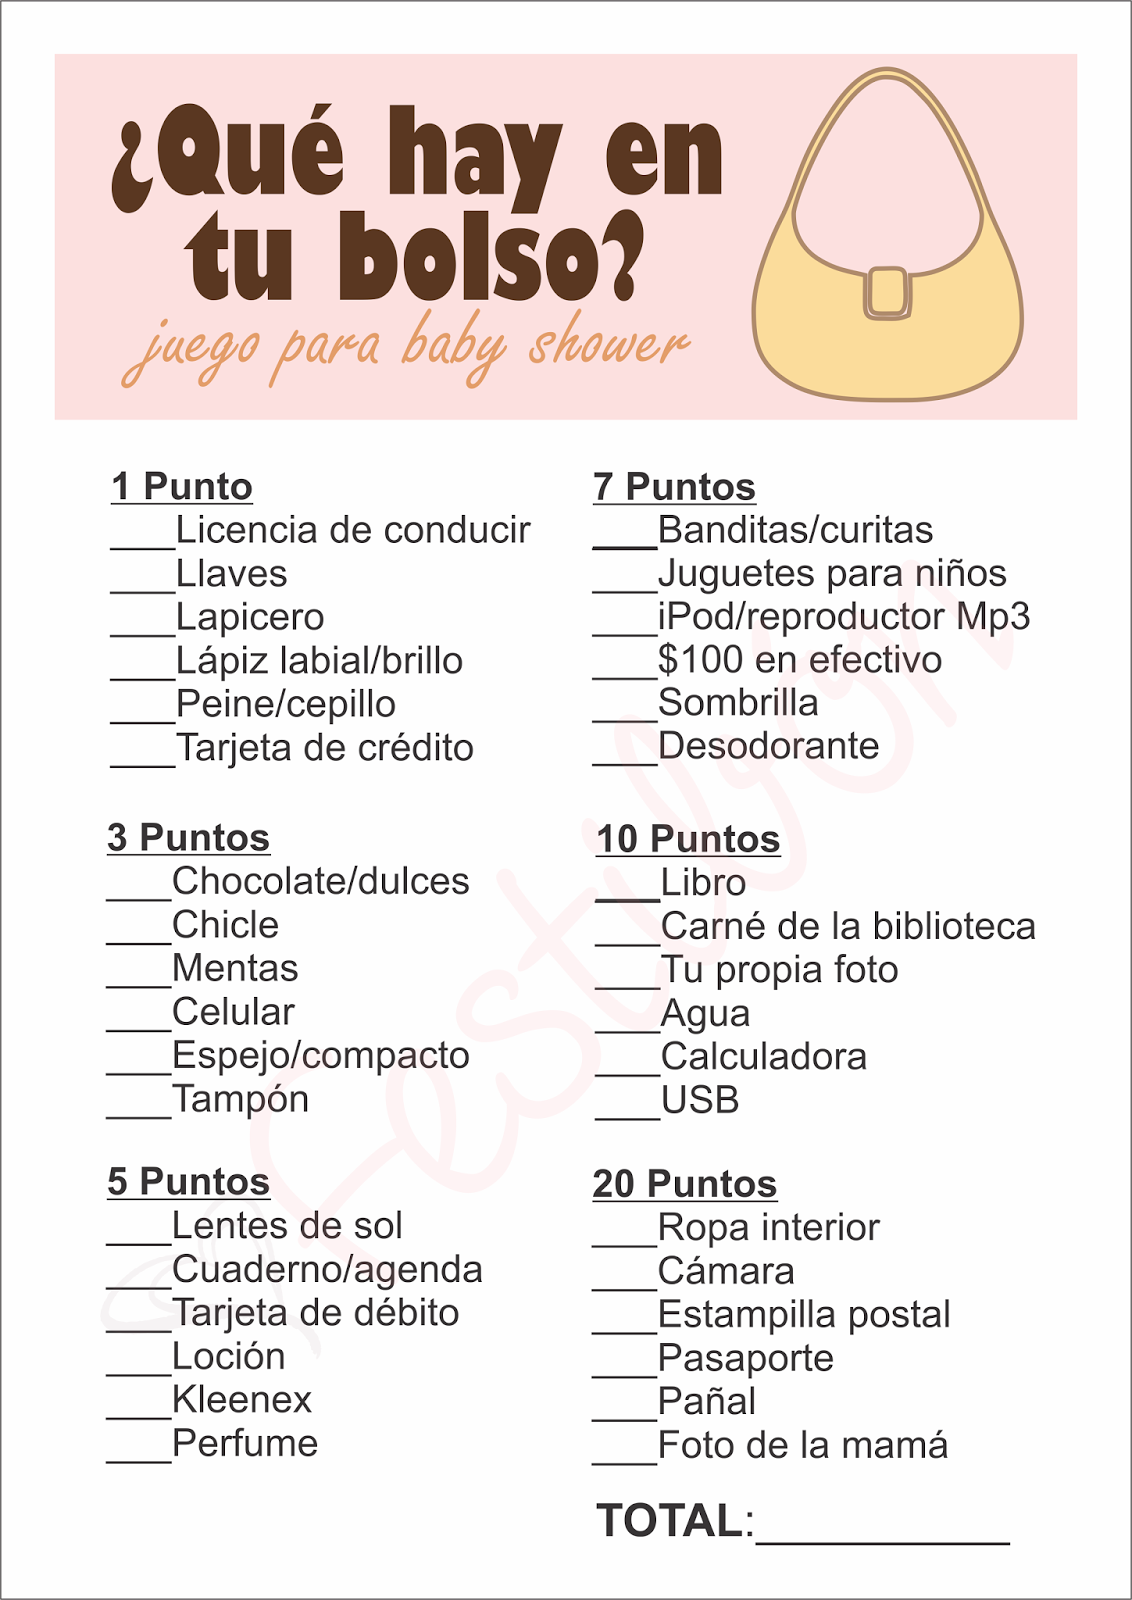 Modern Qué Hay En Tu Bolso? - Juegos Para Baby Shower Para Imprimir intended for Awesome Juegos Para Baby Shower